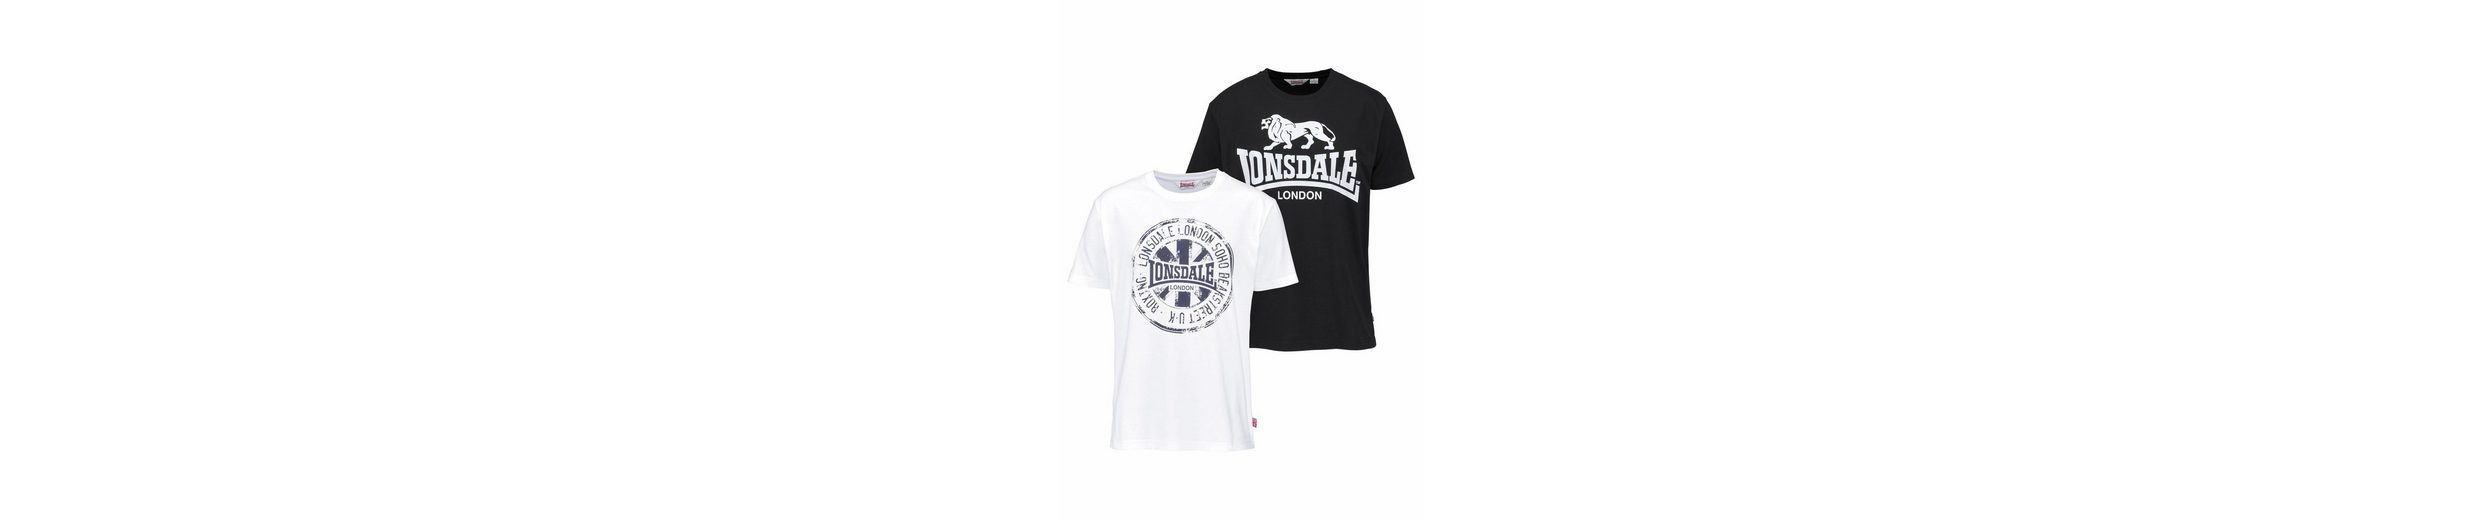 Lonsdale T-Shirt DILDAWN (Packung, 2er-Pack)